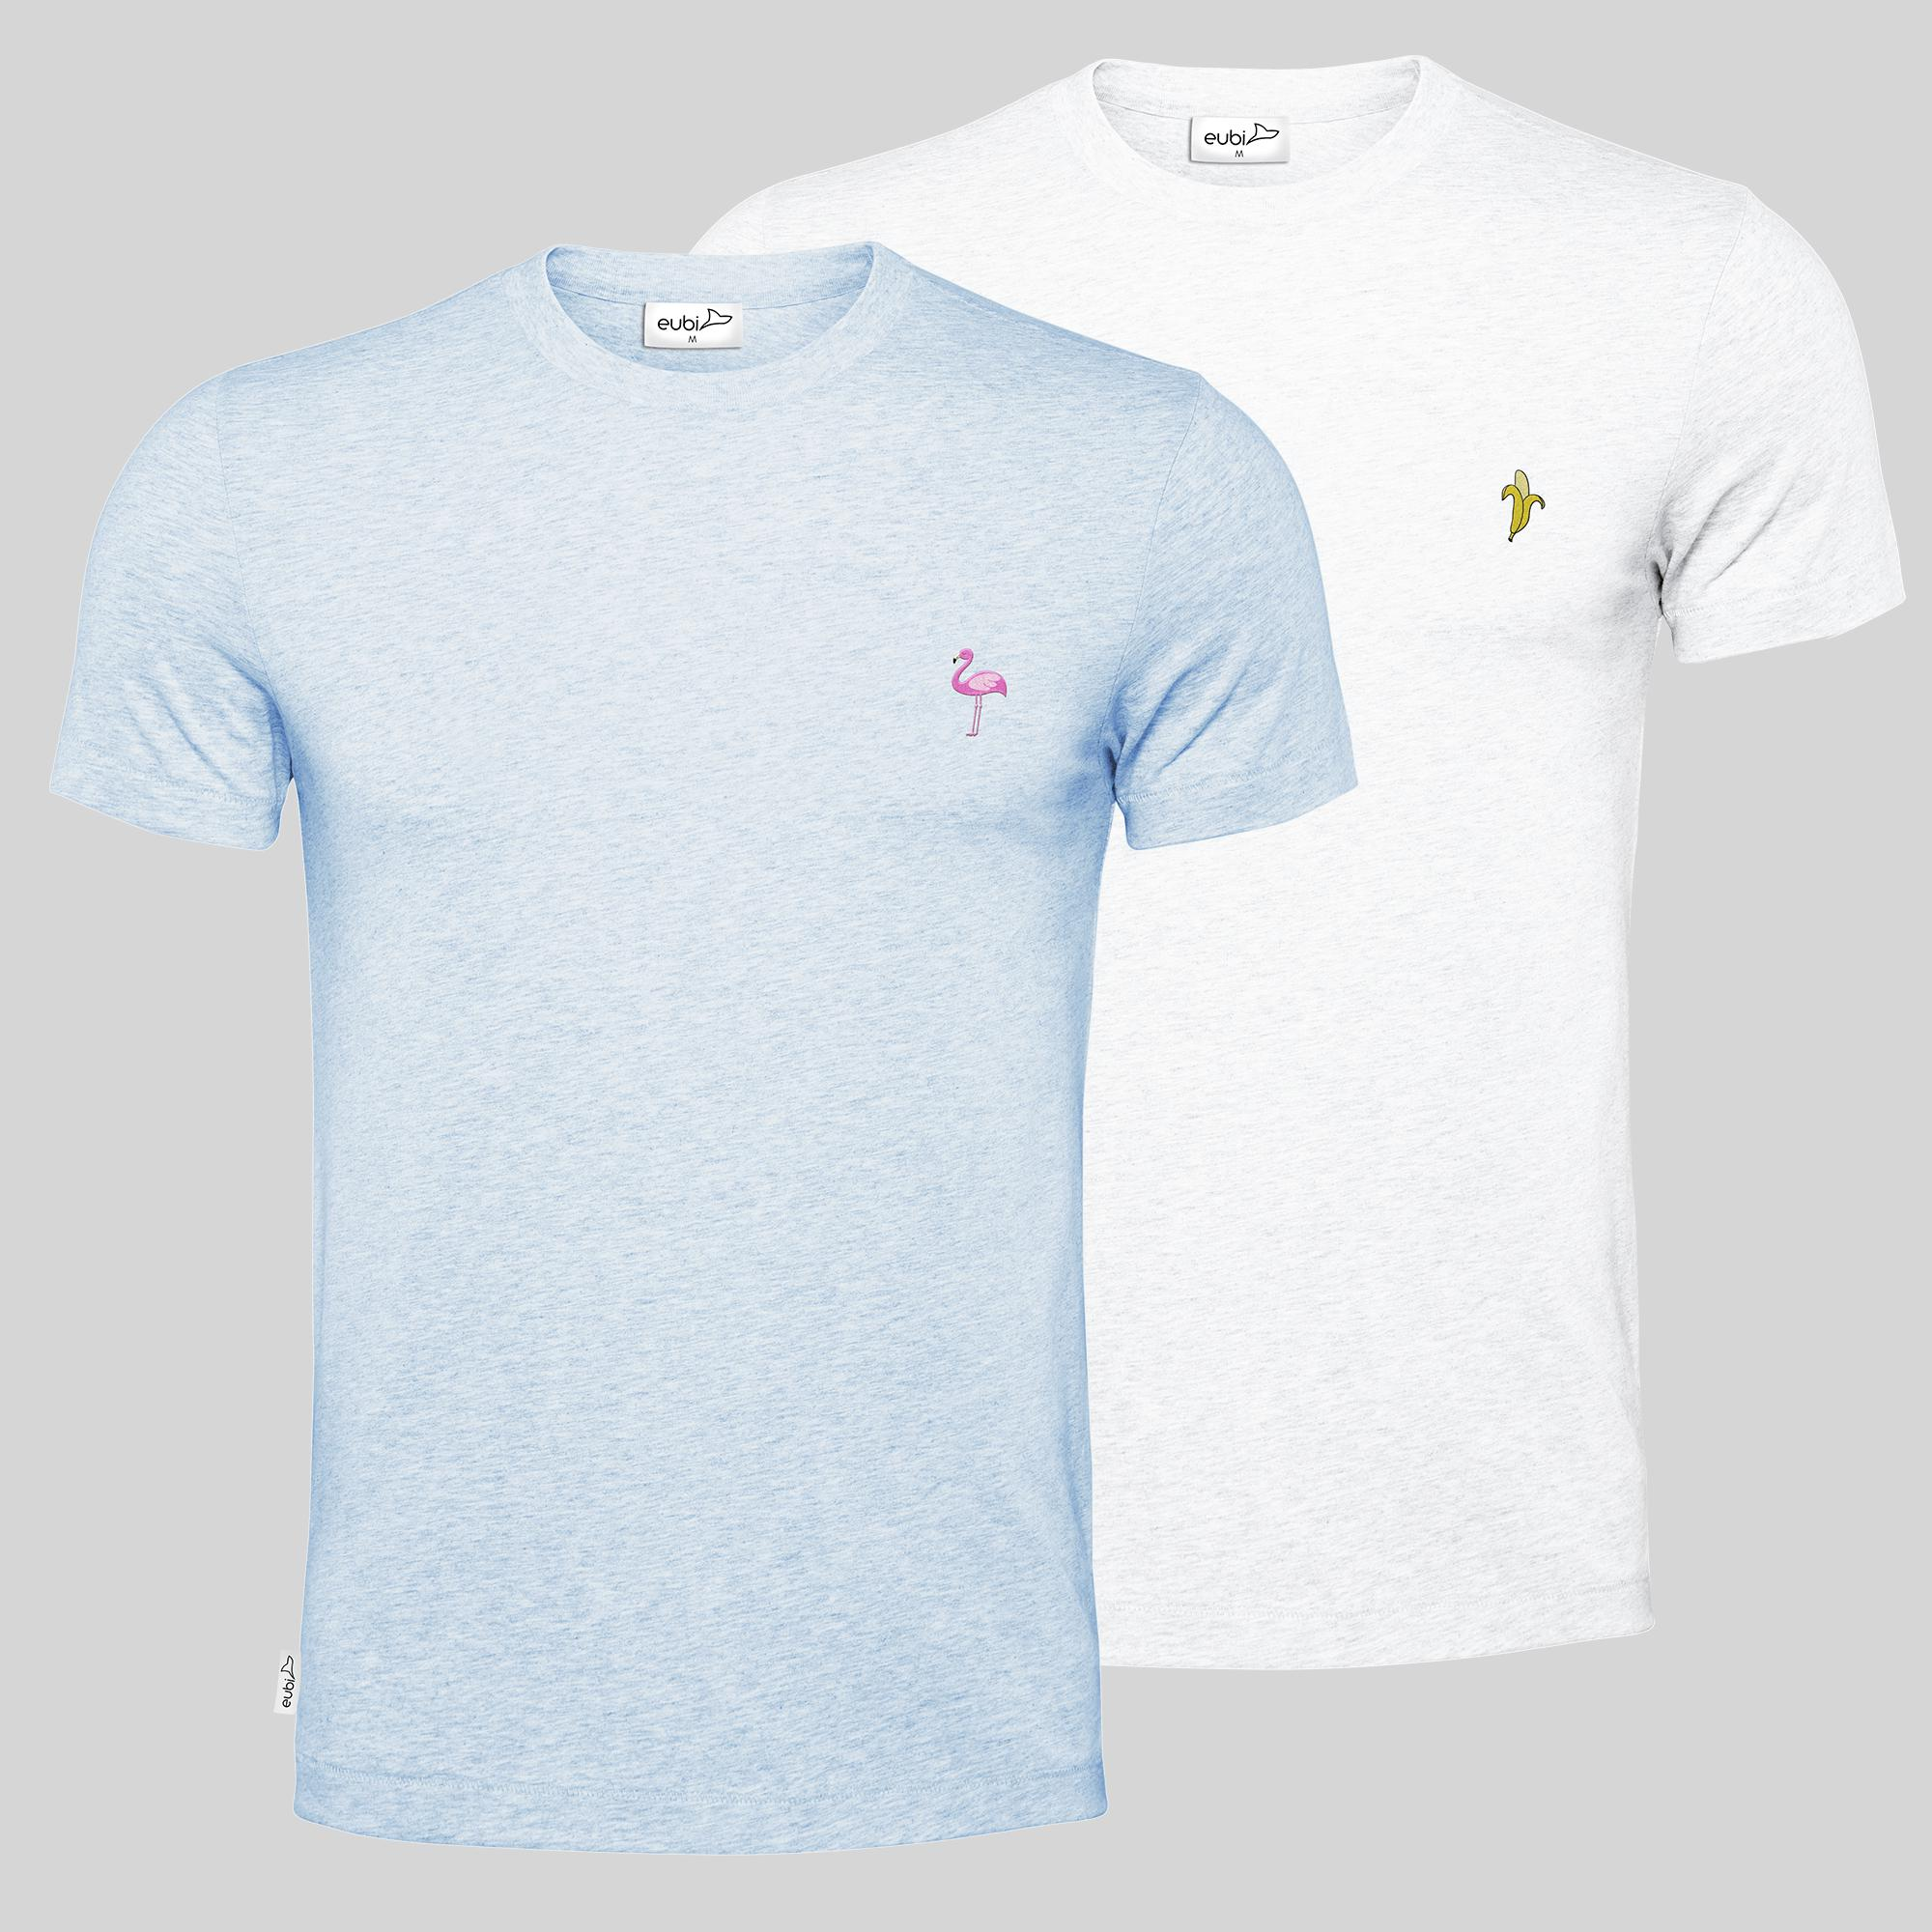 Banana + Flamingo Signature T-Shirt Bundle